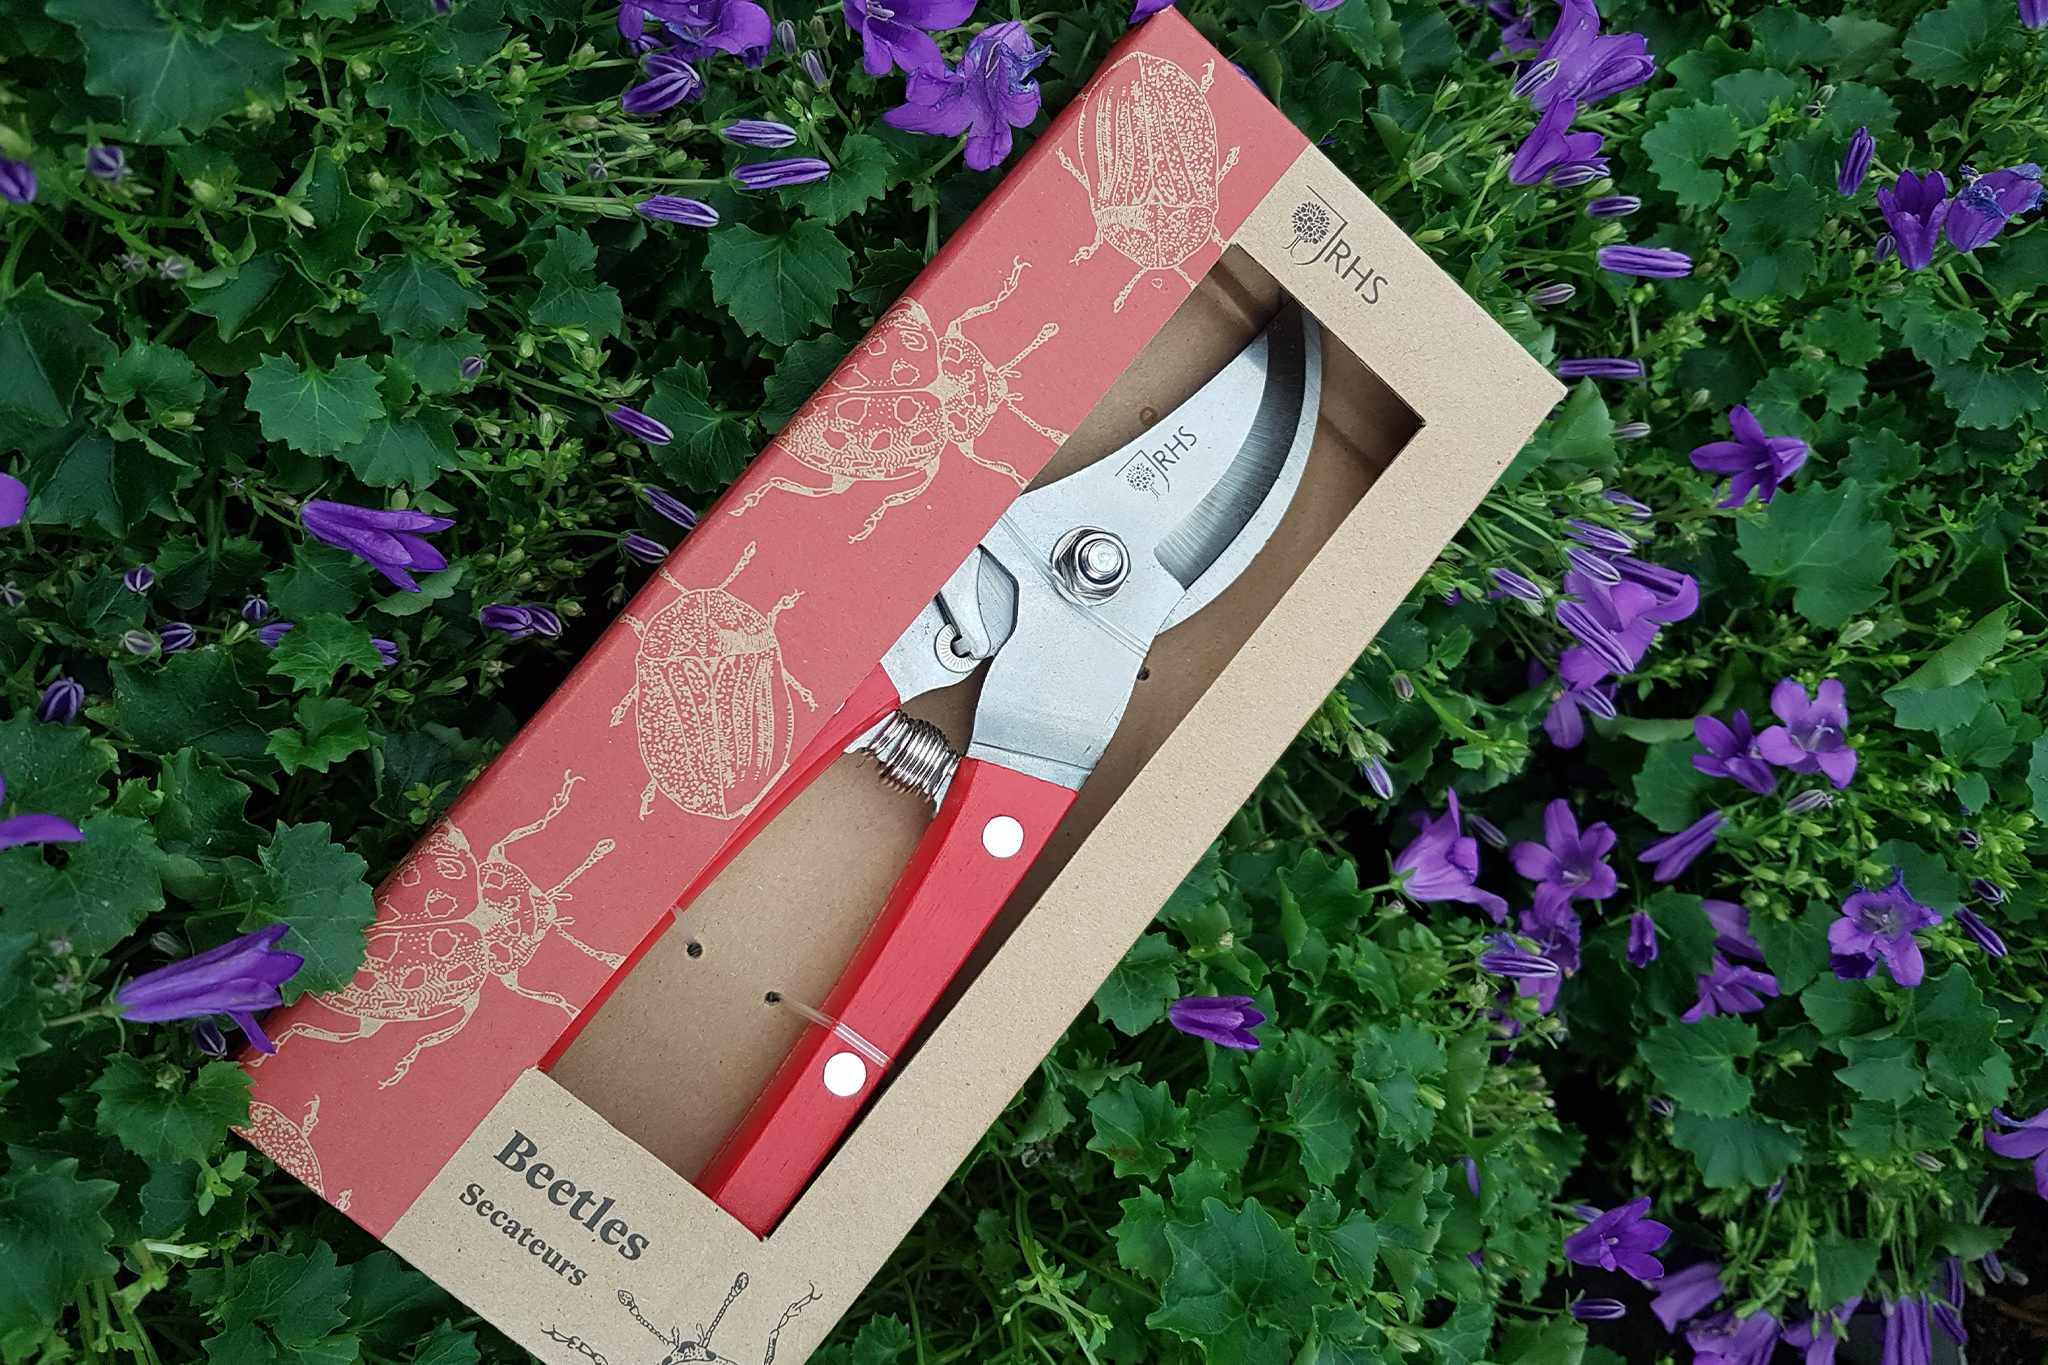 Secateurs from the RHS